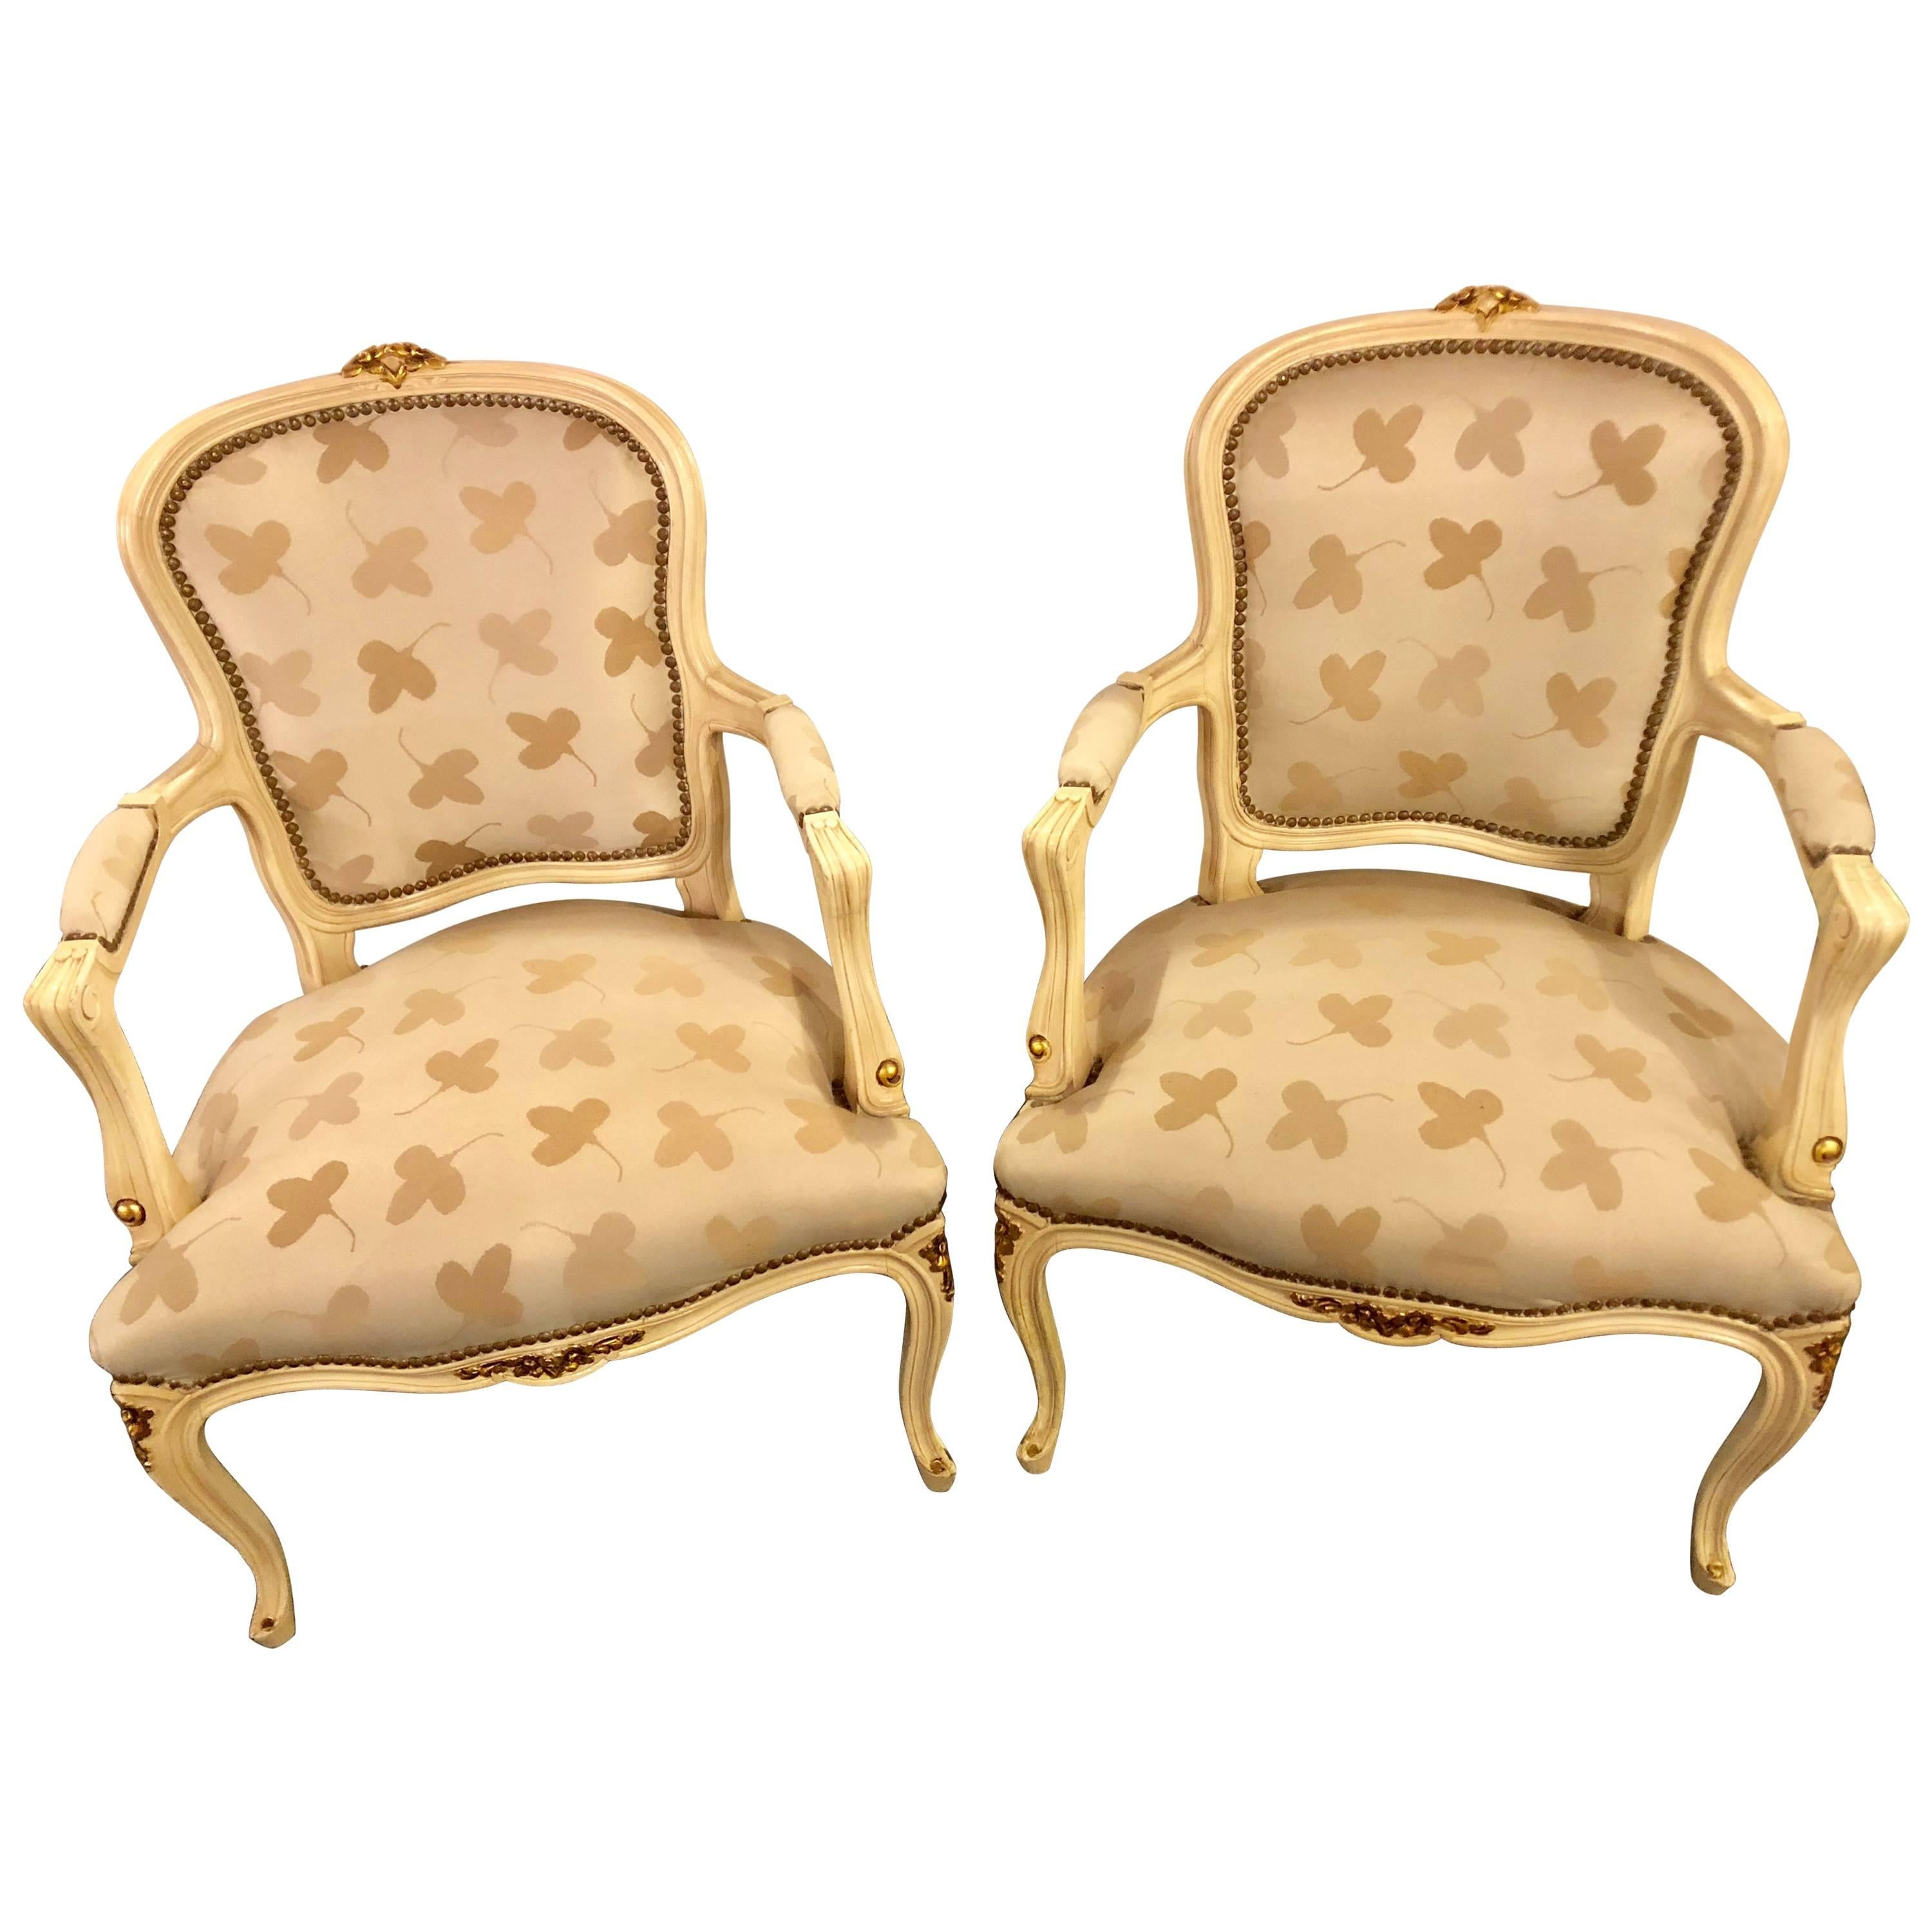 Pair of French Louis XV Style Parcel-Gilt and Paint Decorated Bergere Chairs